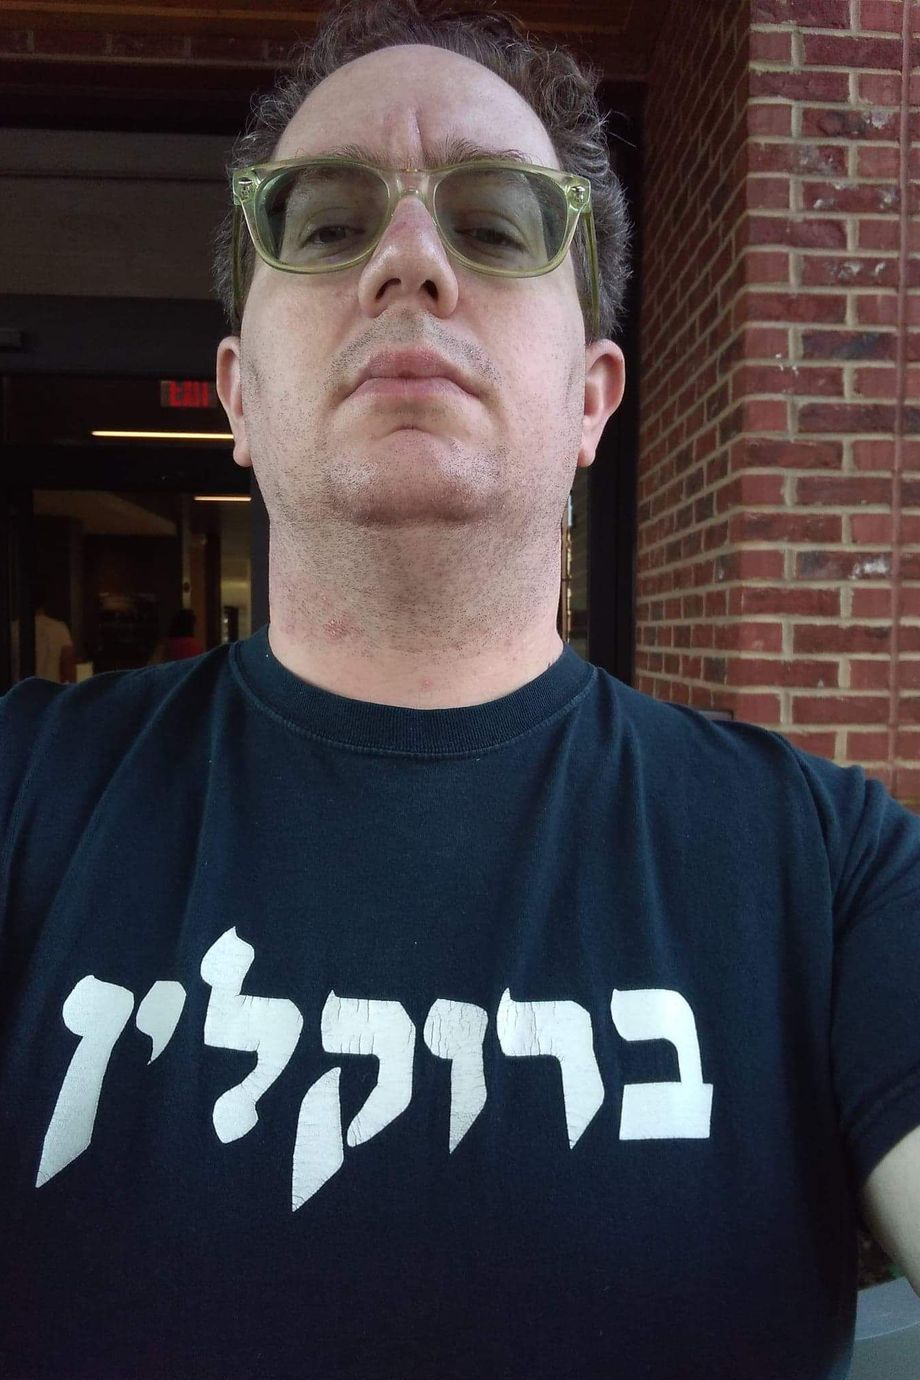 """Yonah Kohn, wearing a """"Brooklyn"""" shirt, says he was not given an adequate education in yeshivas he attended as a child. PHOTO CREDIT: Courtesy of Yonah Kohn"""